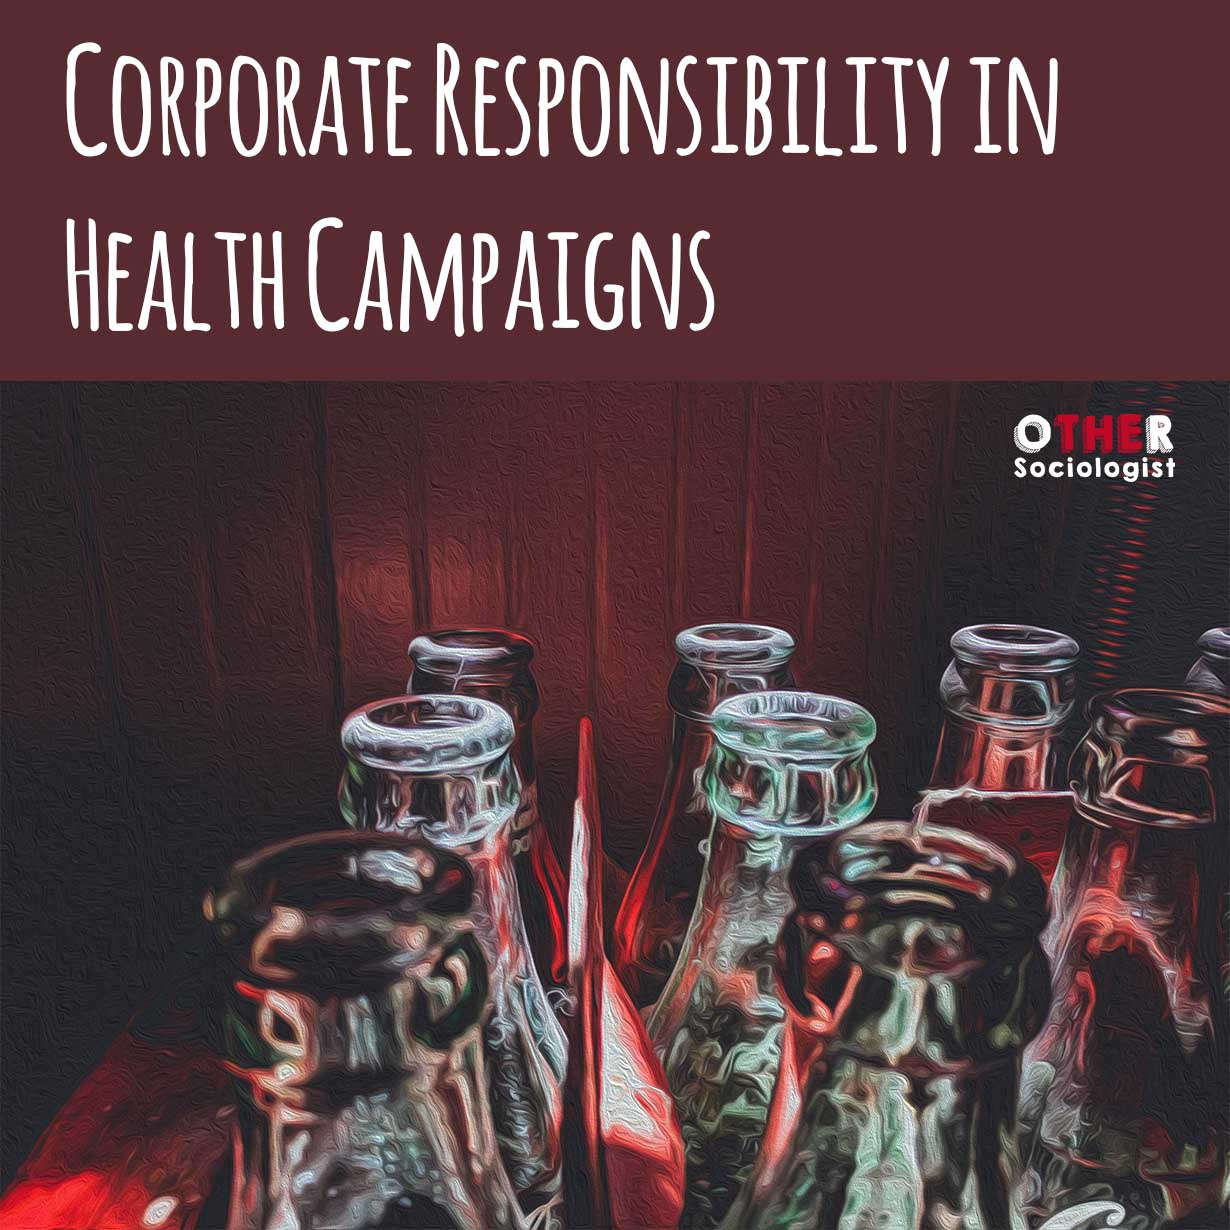 Corporate Responsibility in Health Campaigns